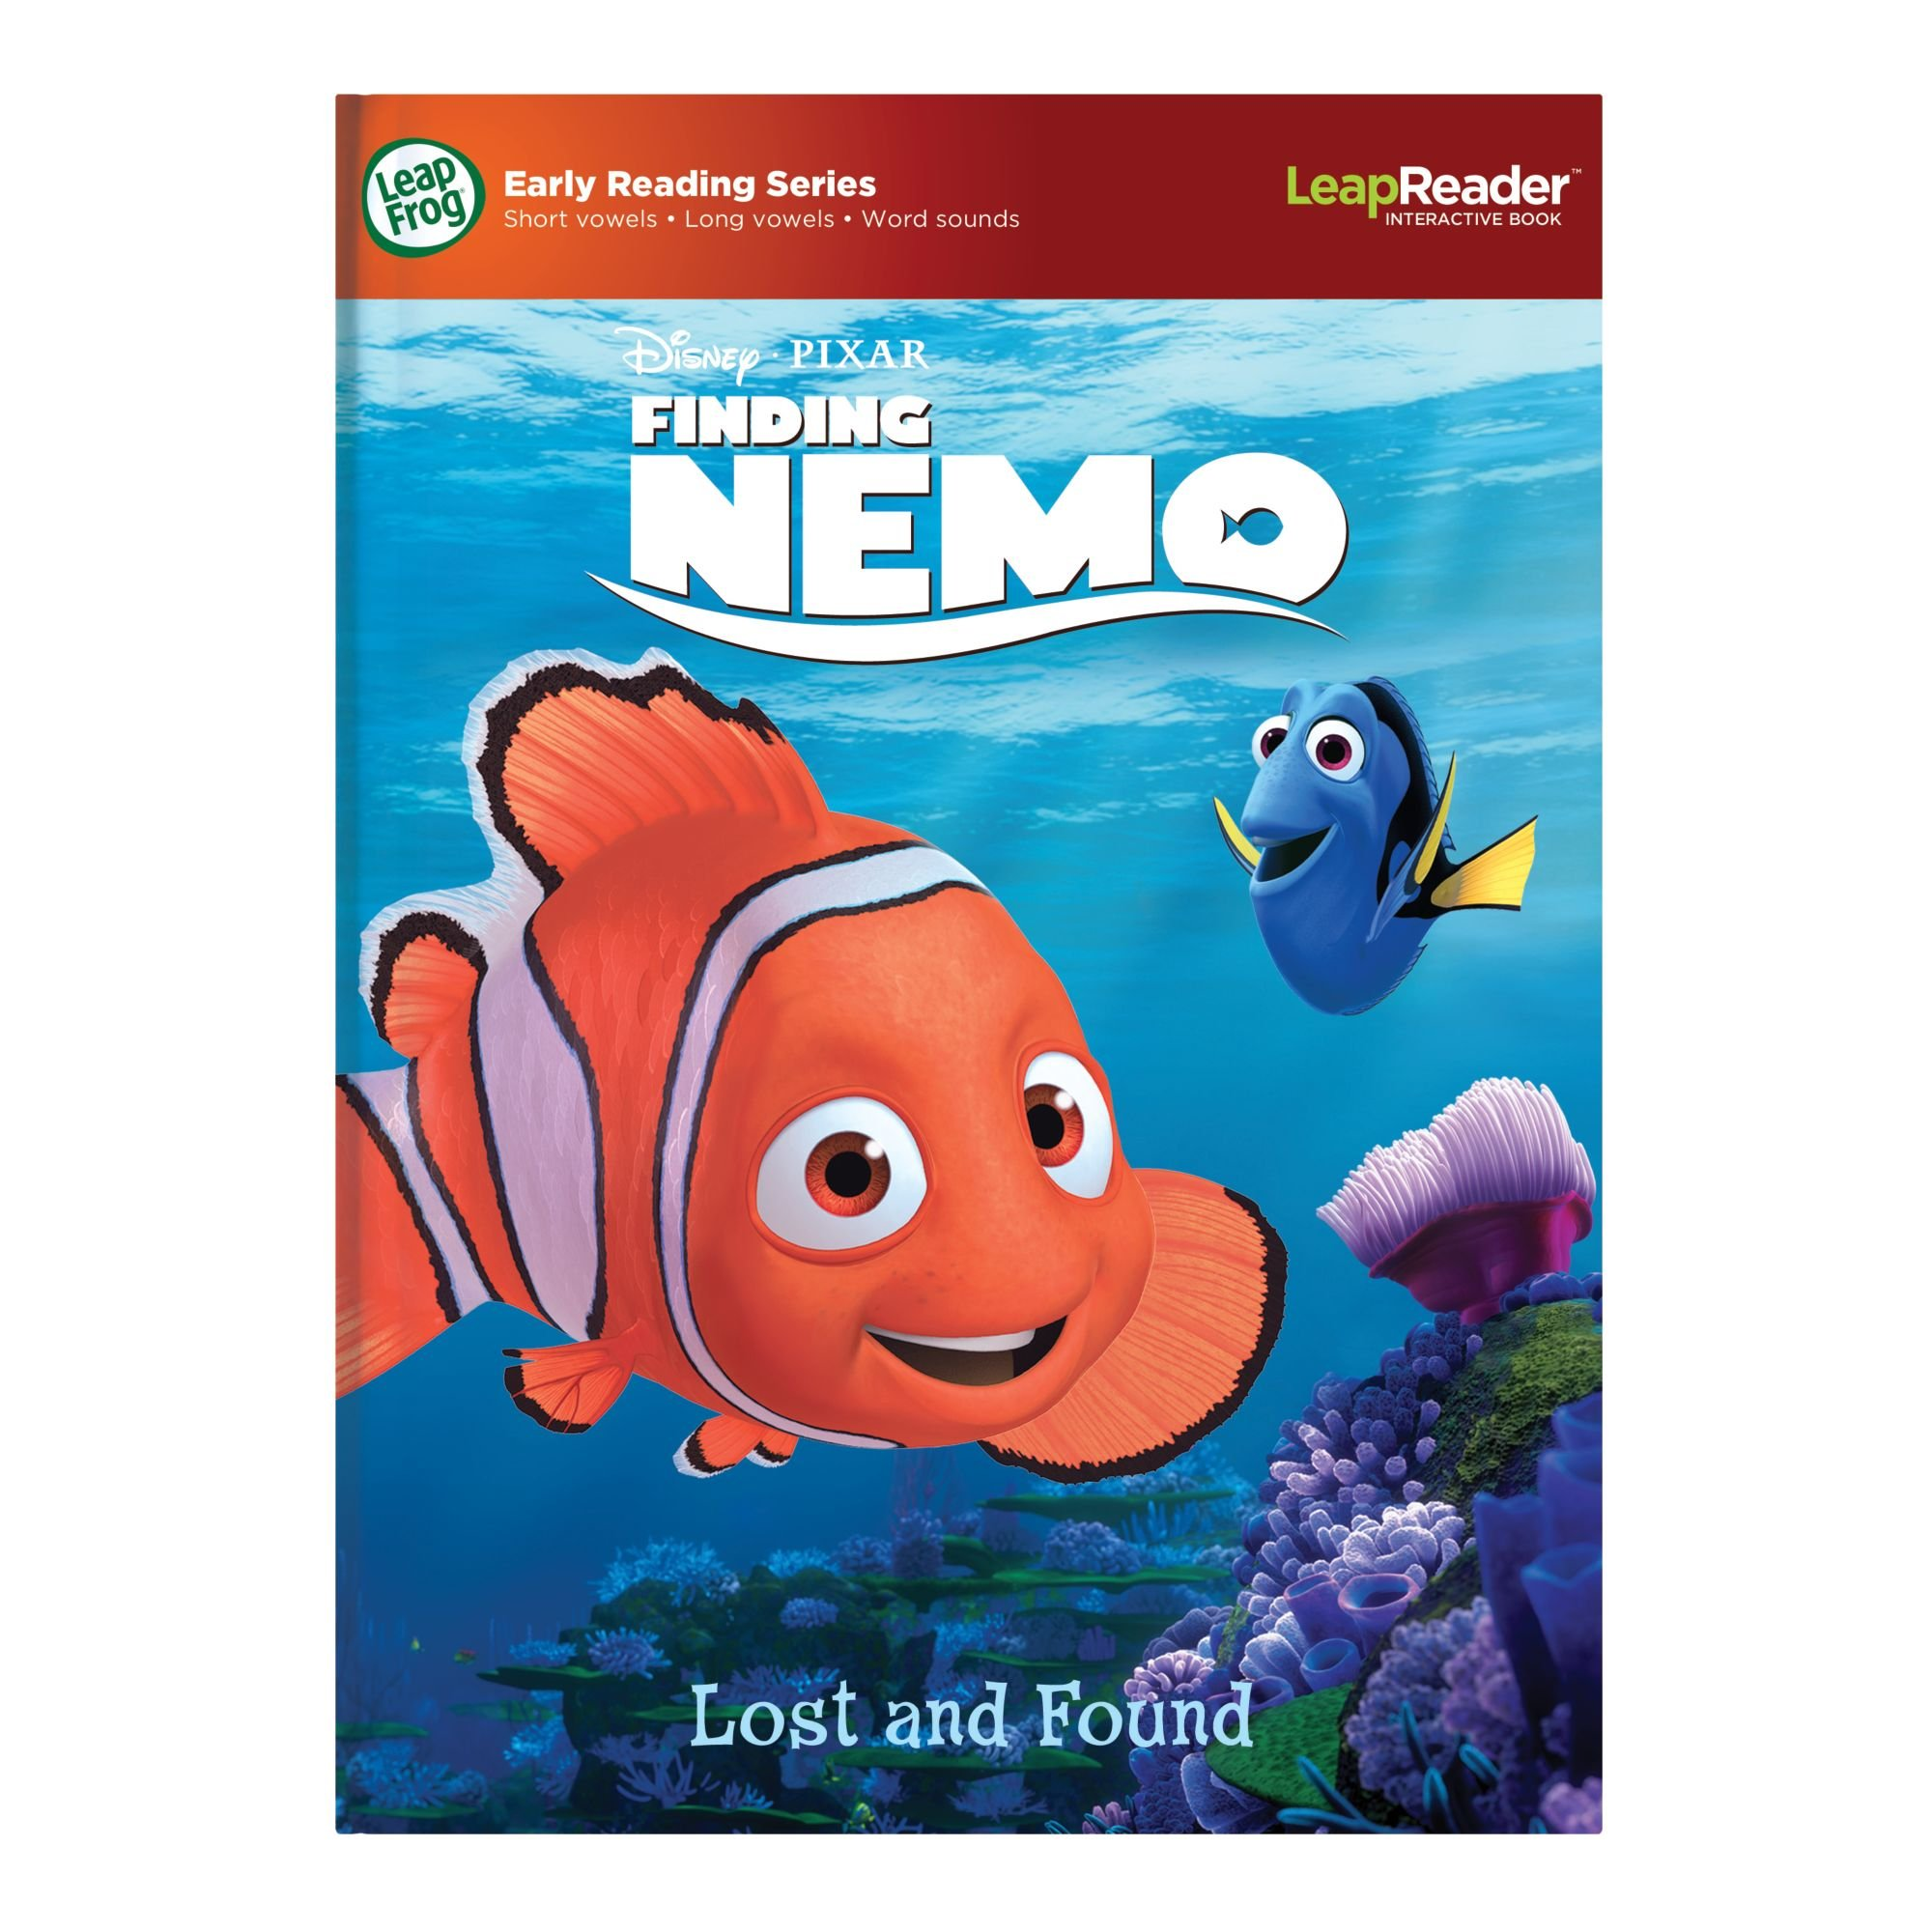 LeapFrog LeapReader Book: Disney·Pixar Finding Nemo, Lost and Found (works with Tag) by LeapFrog (Image #8)